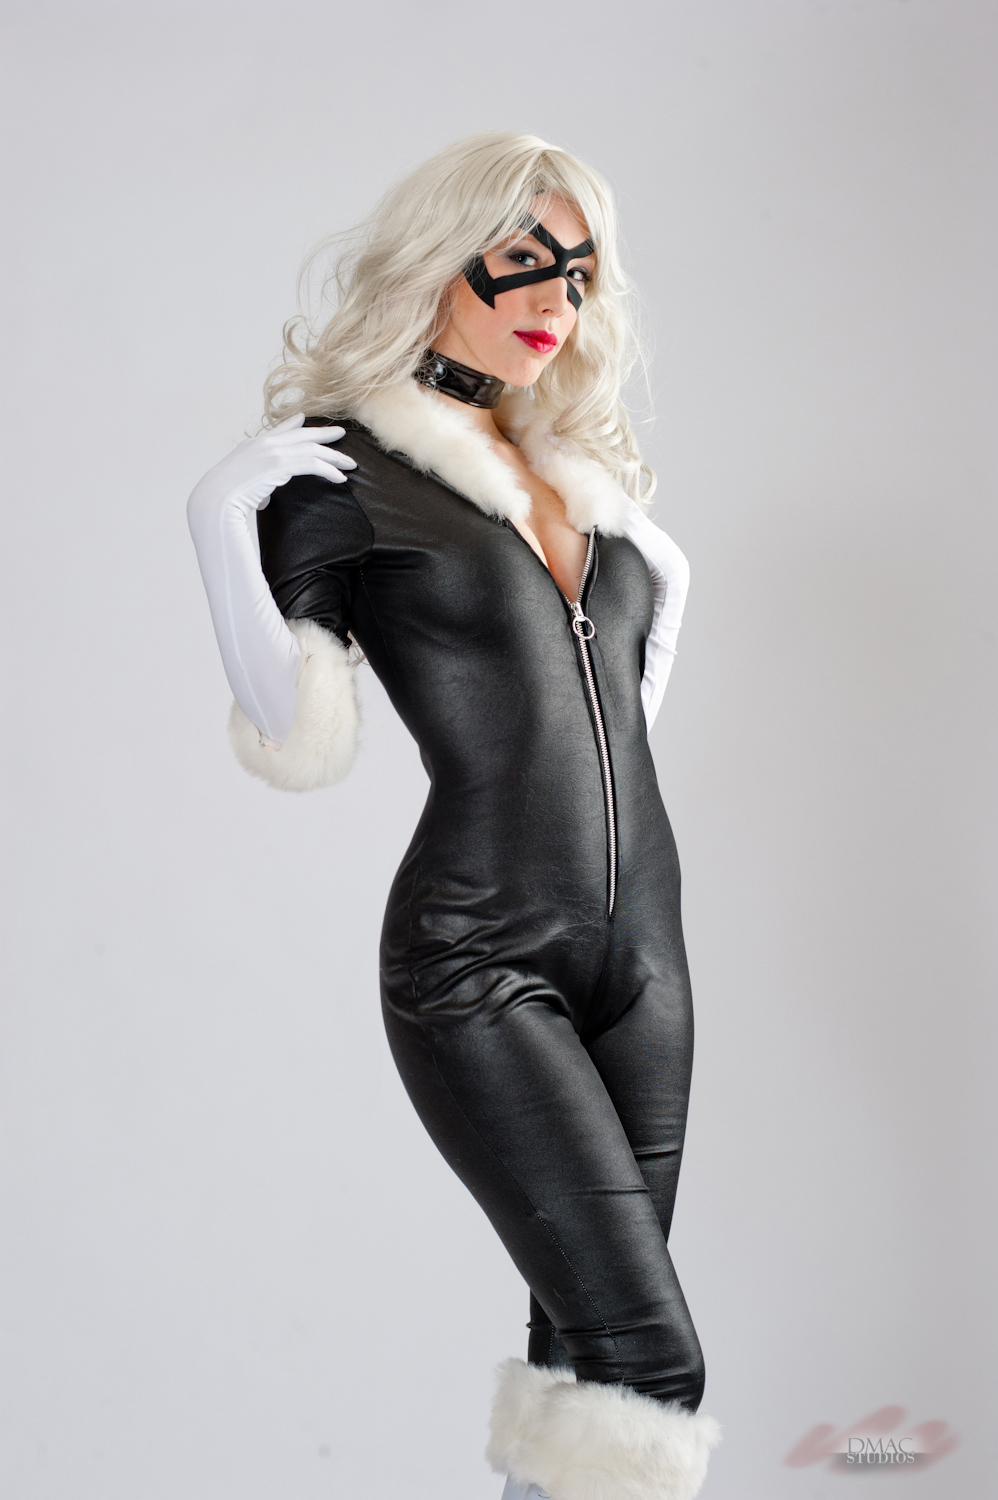 Shut-up-and-duel-me is Black Cat  |  Photo by Jagged-eye